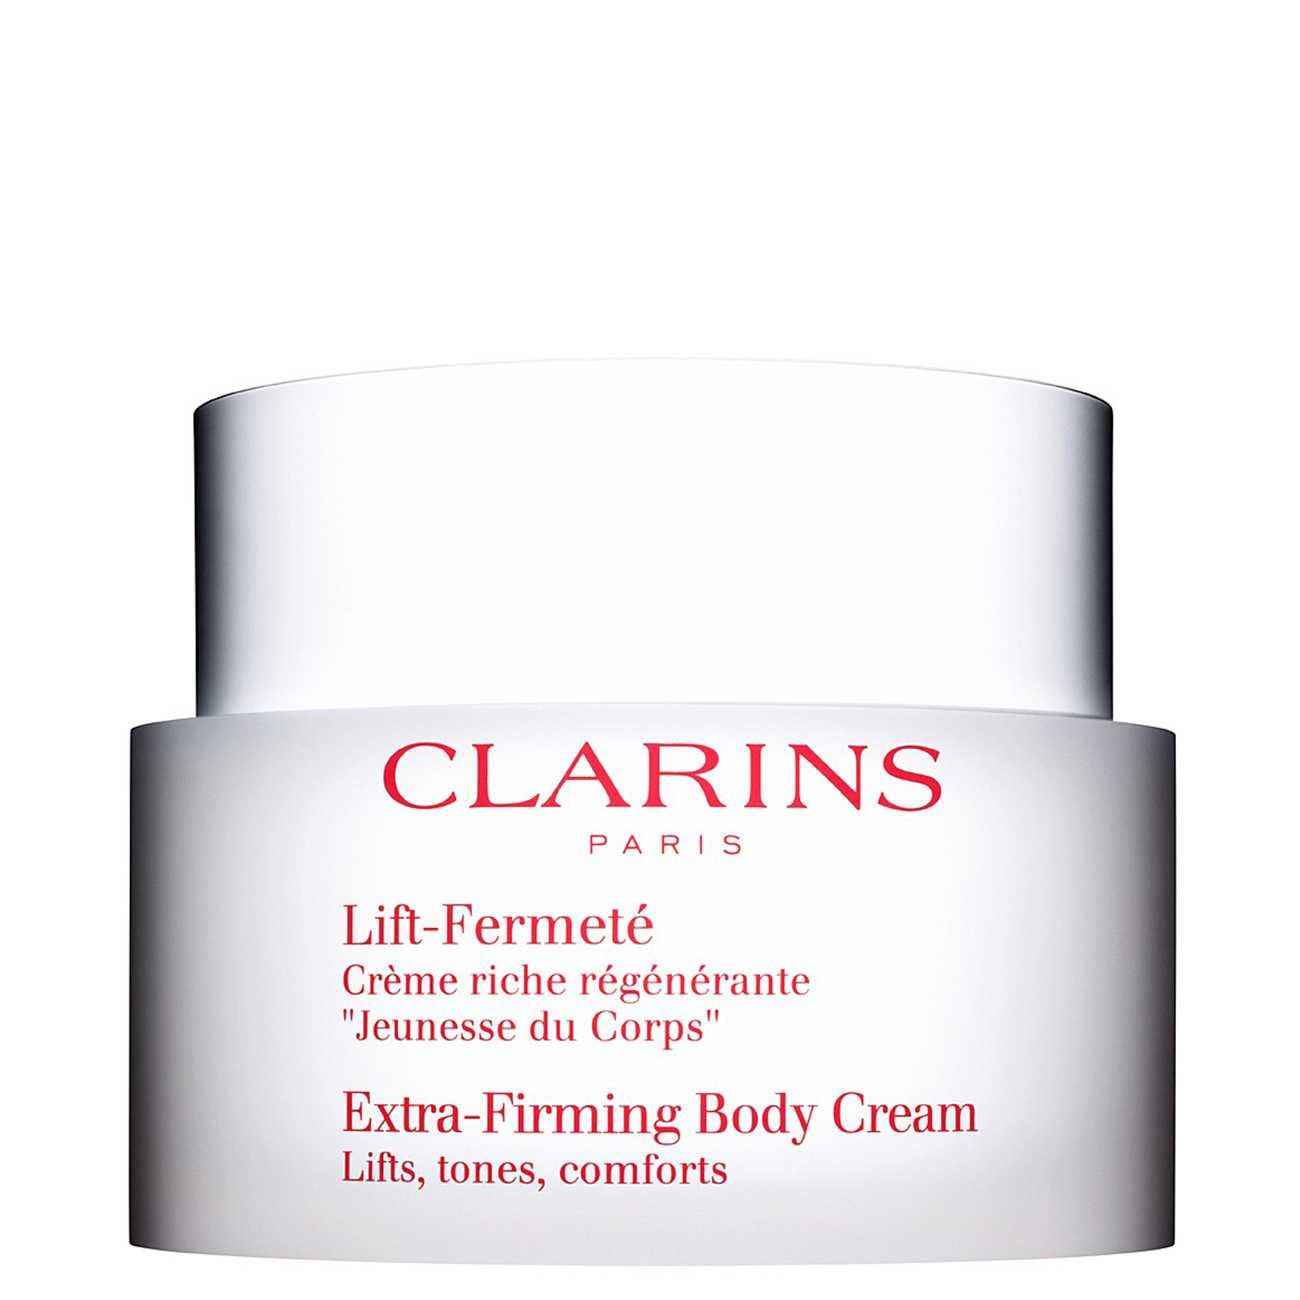 Extra-Firming Body Cream 200 Ml